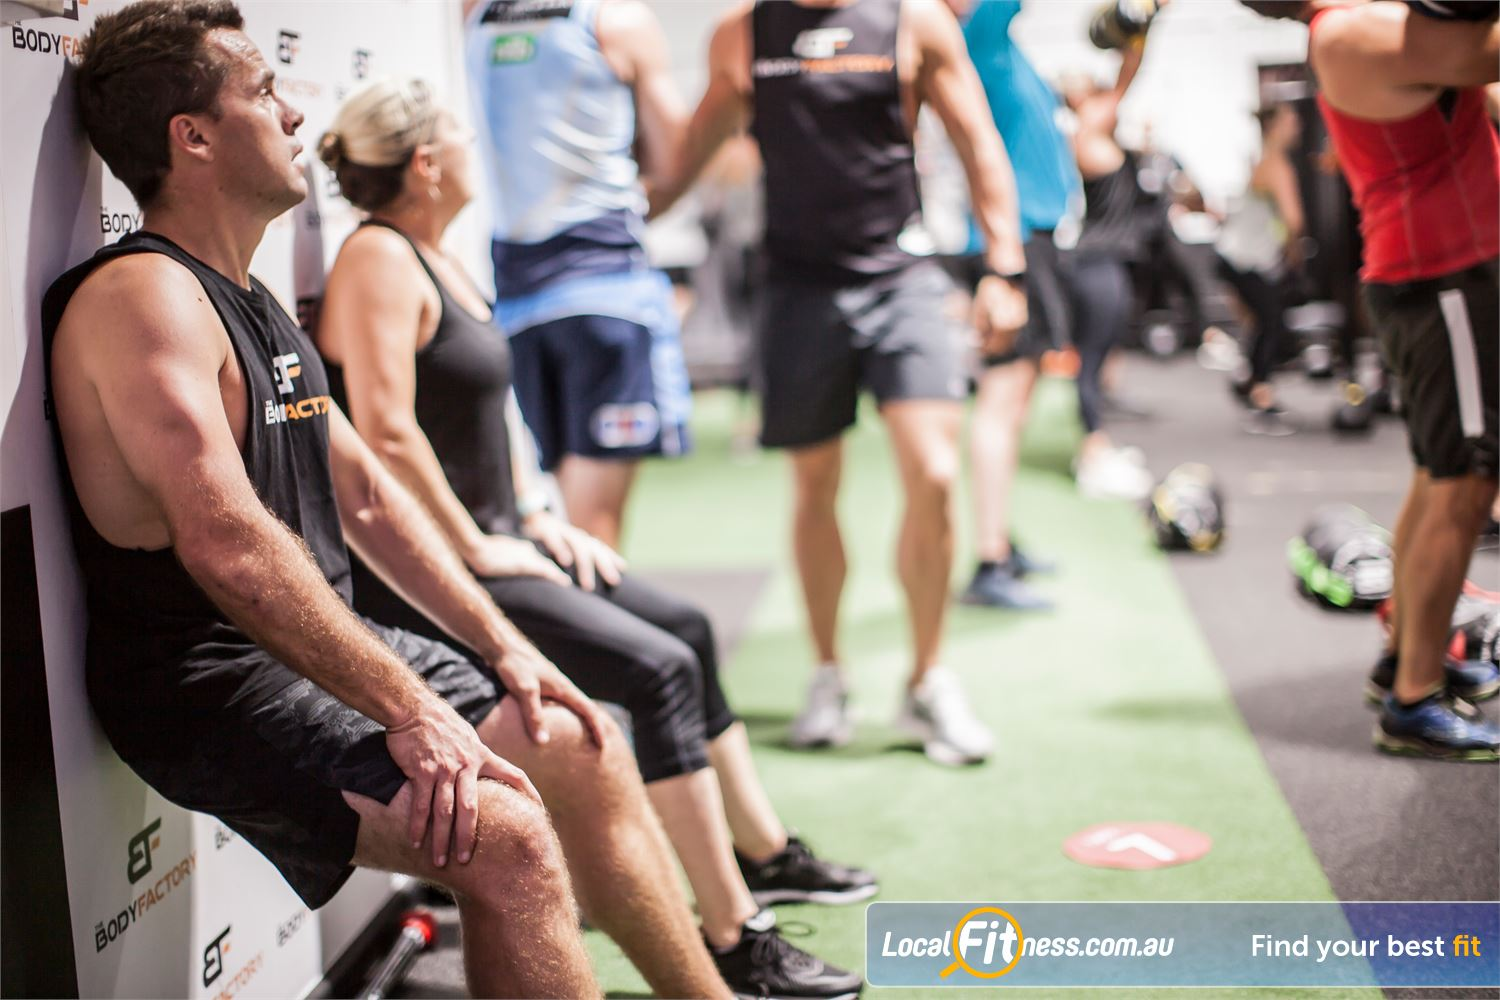 The Body Factory Near Port Hacking Experience the energy of our Caringbah HIIT group fitness classes.